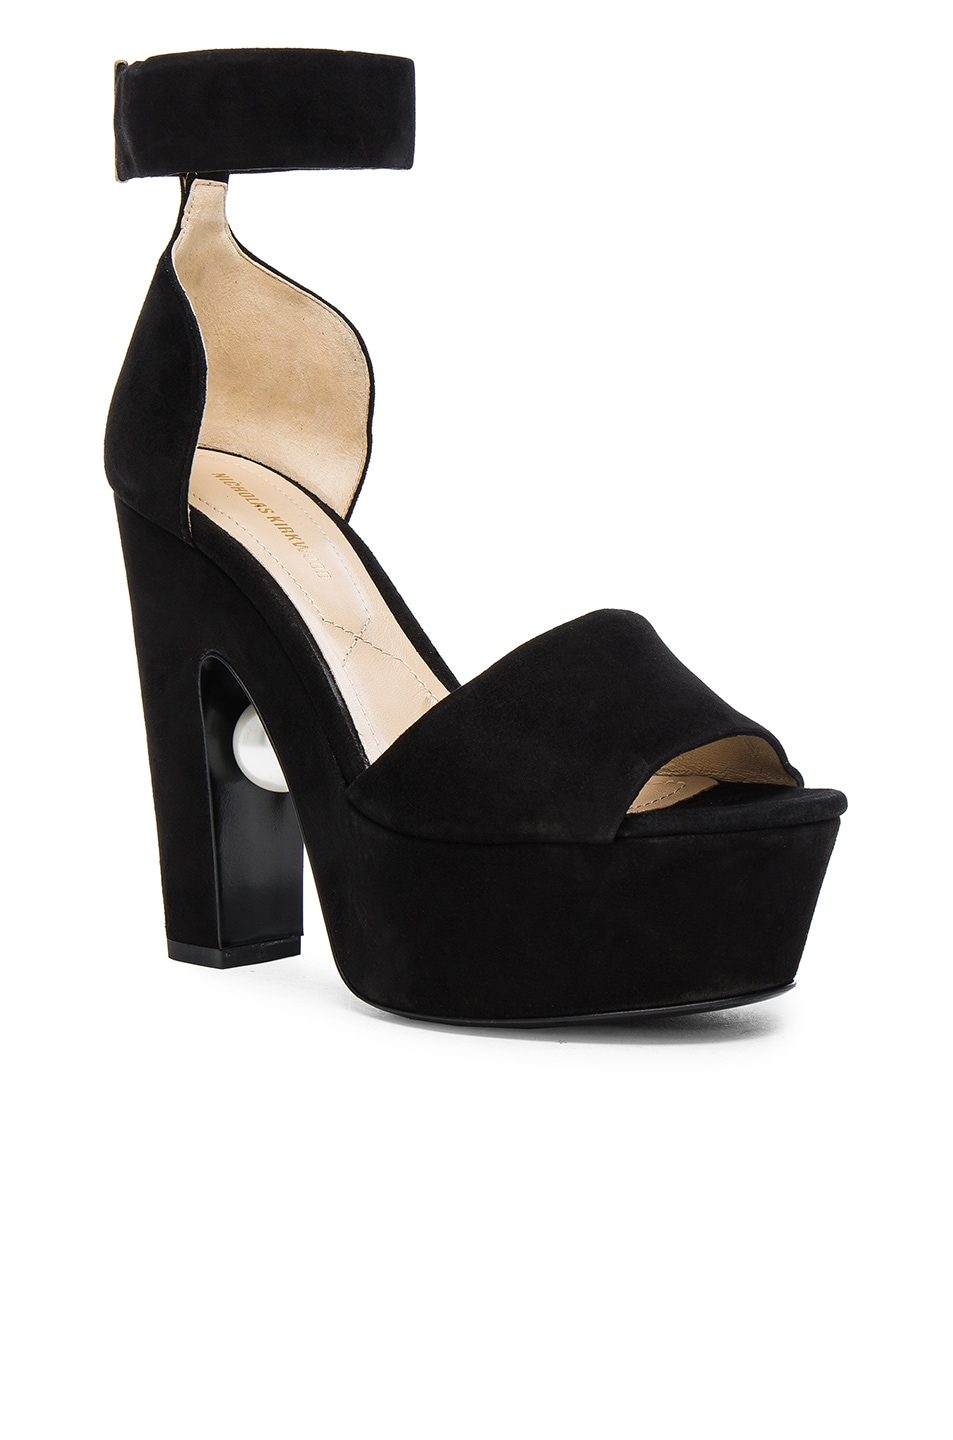 Image 2 of Nicholas Kirkwood 130mm Pearl Strap Heels in Black Suede